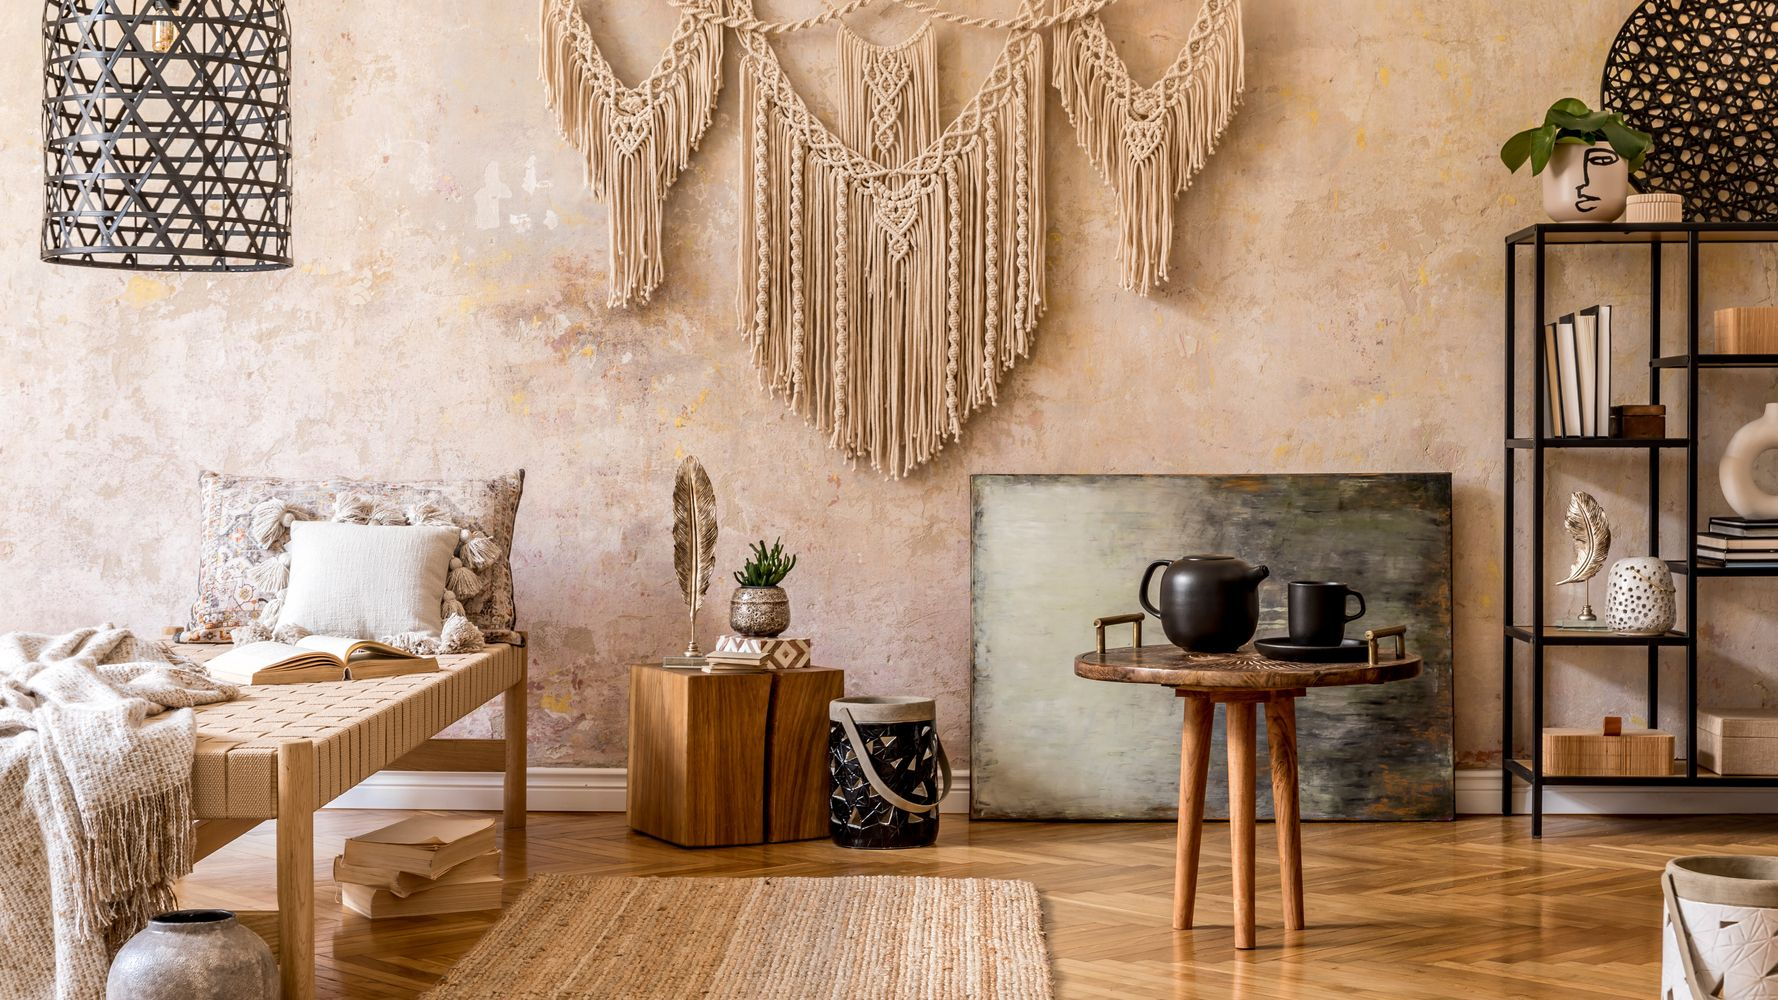 The Best Stores To Buy Southwestern Style Furniture And Decor ...